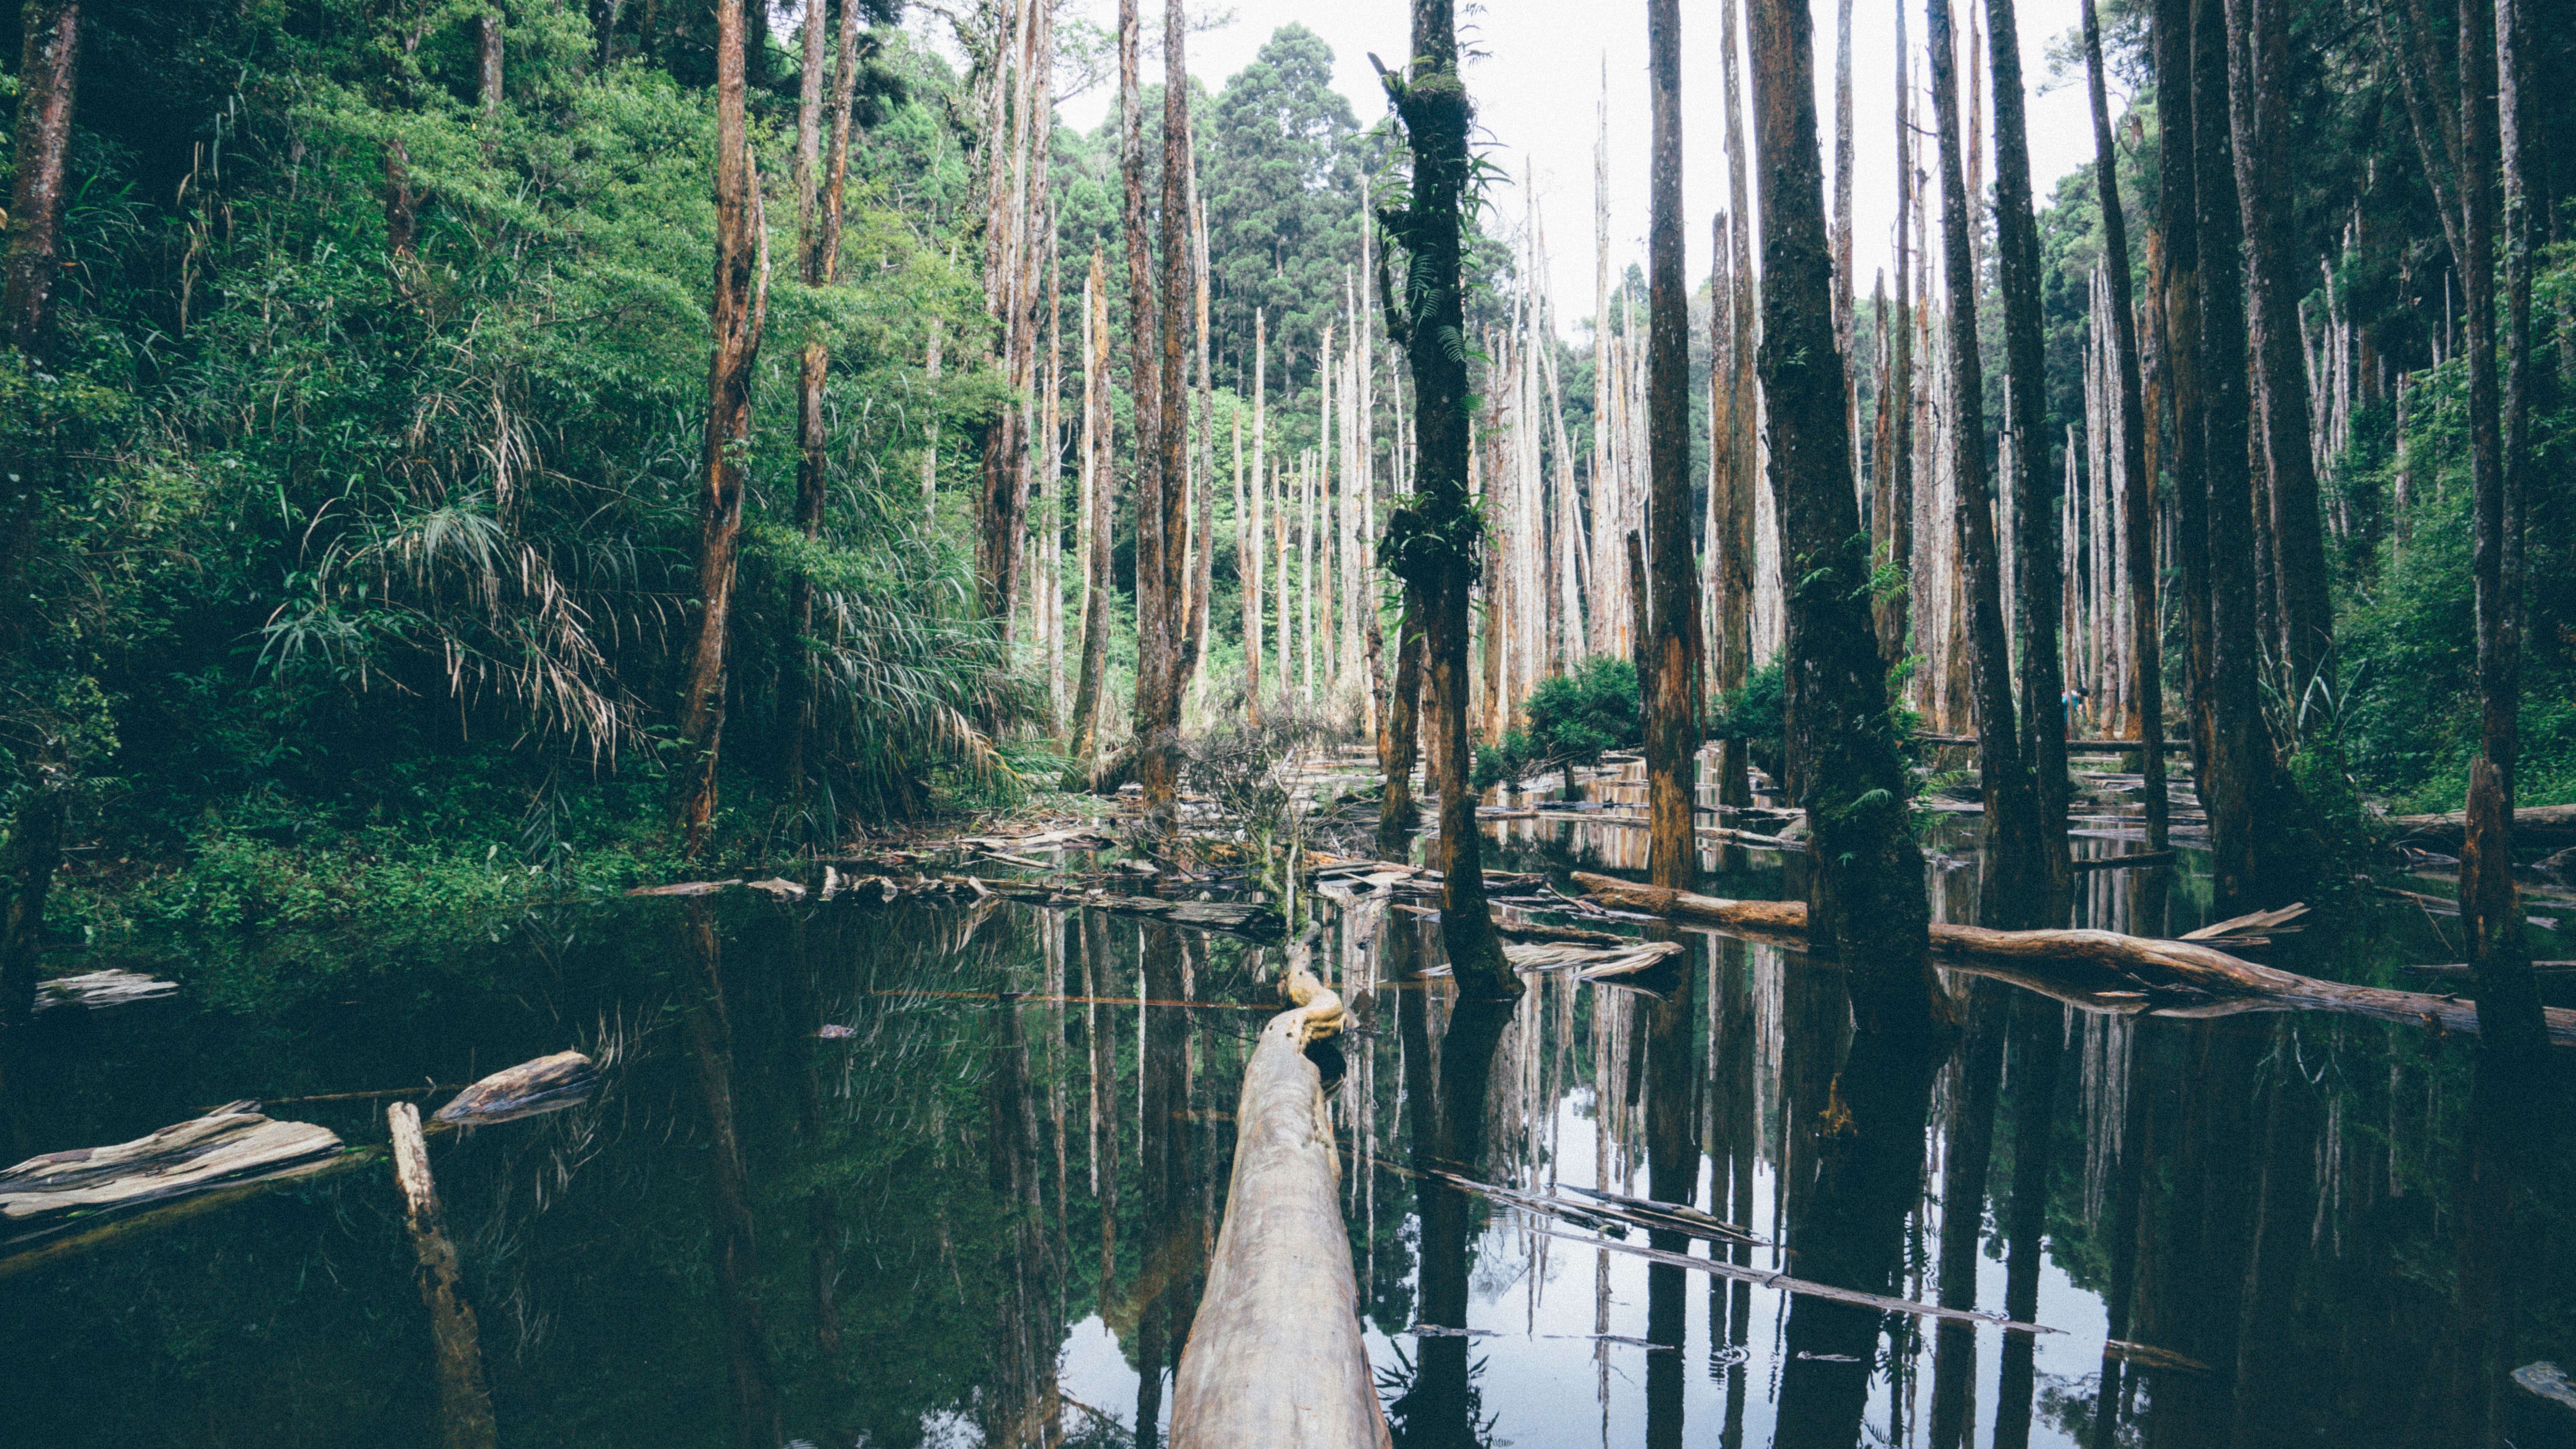 trees on body of water